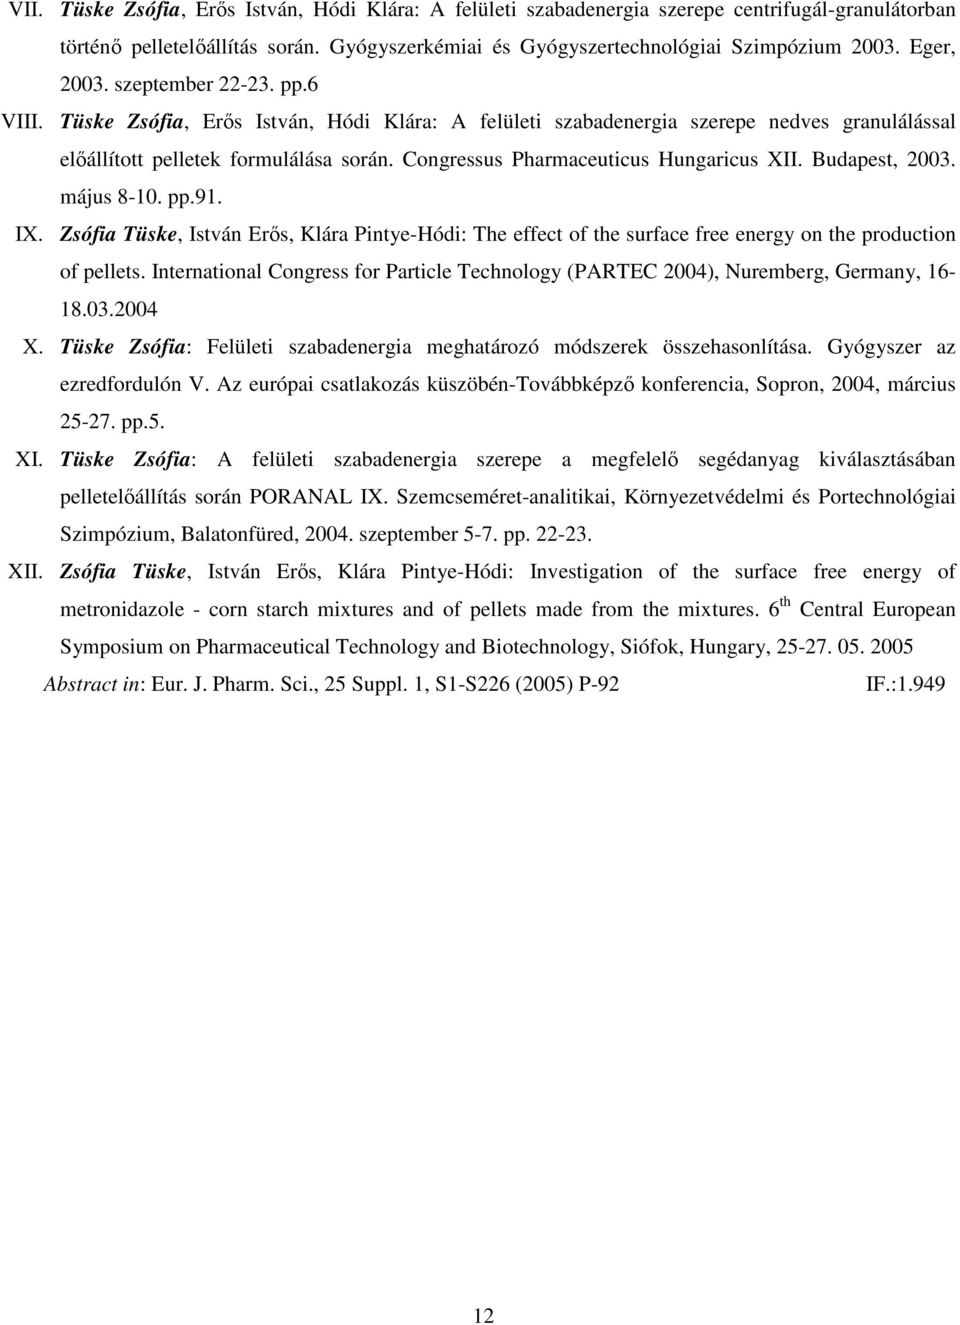 Congressus Pharmaceuticus Hungaricus XII. Budapest, 2003. május 8-10. pp.91. IX. Zsófia Tüske, István Erős, Klára Pintye-Hódi: The effect of the surface free energy on the production of pellets.